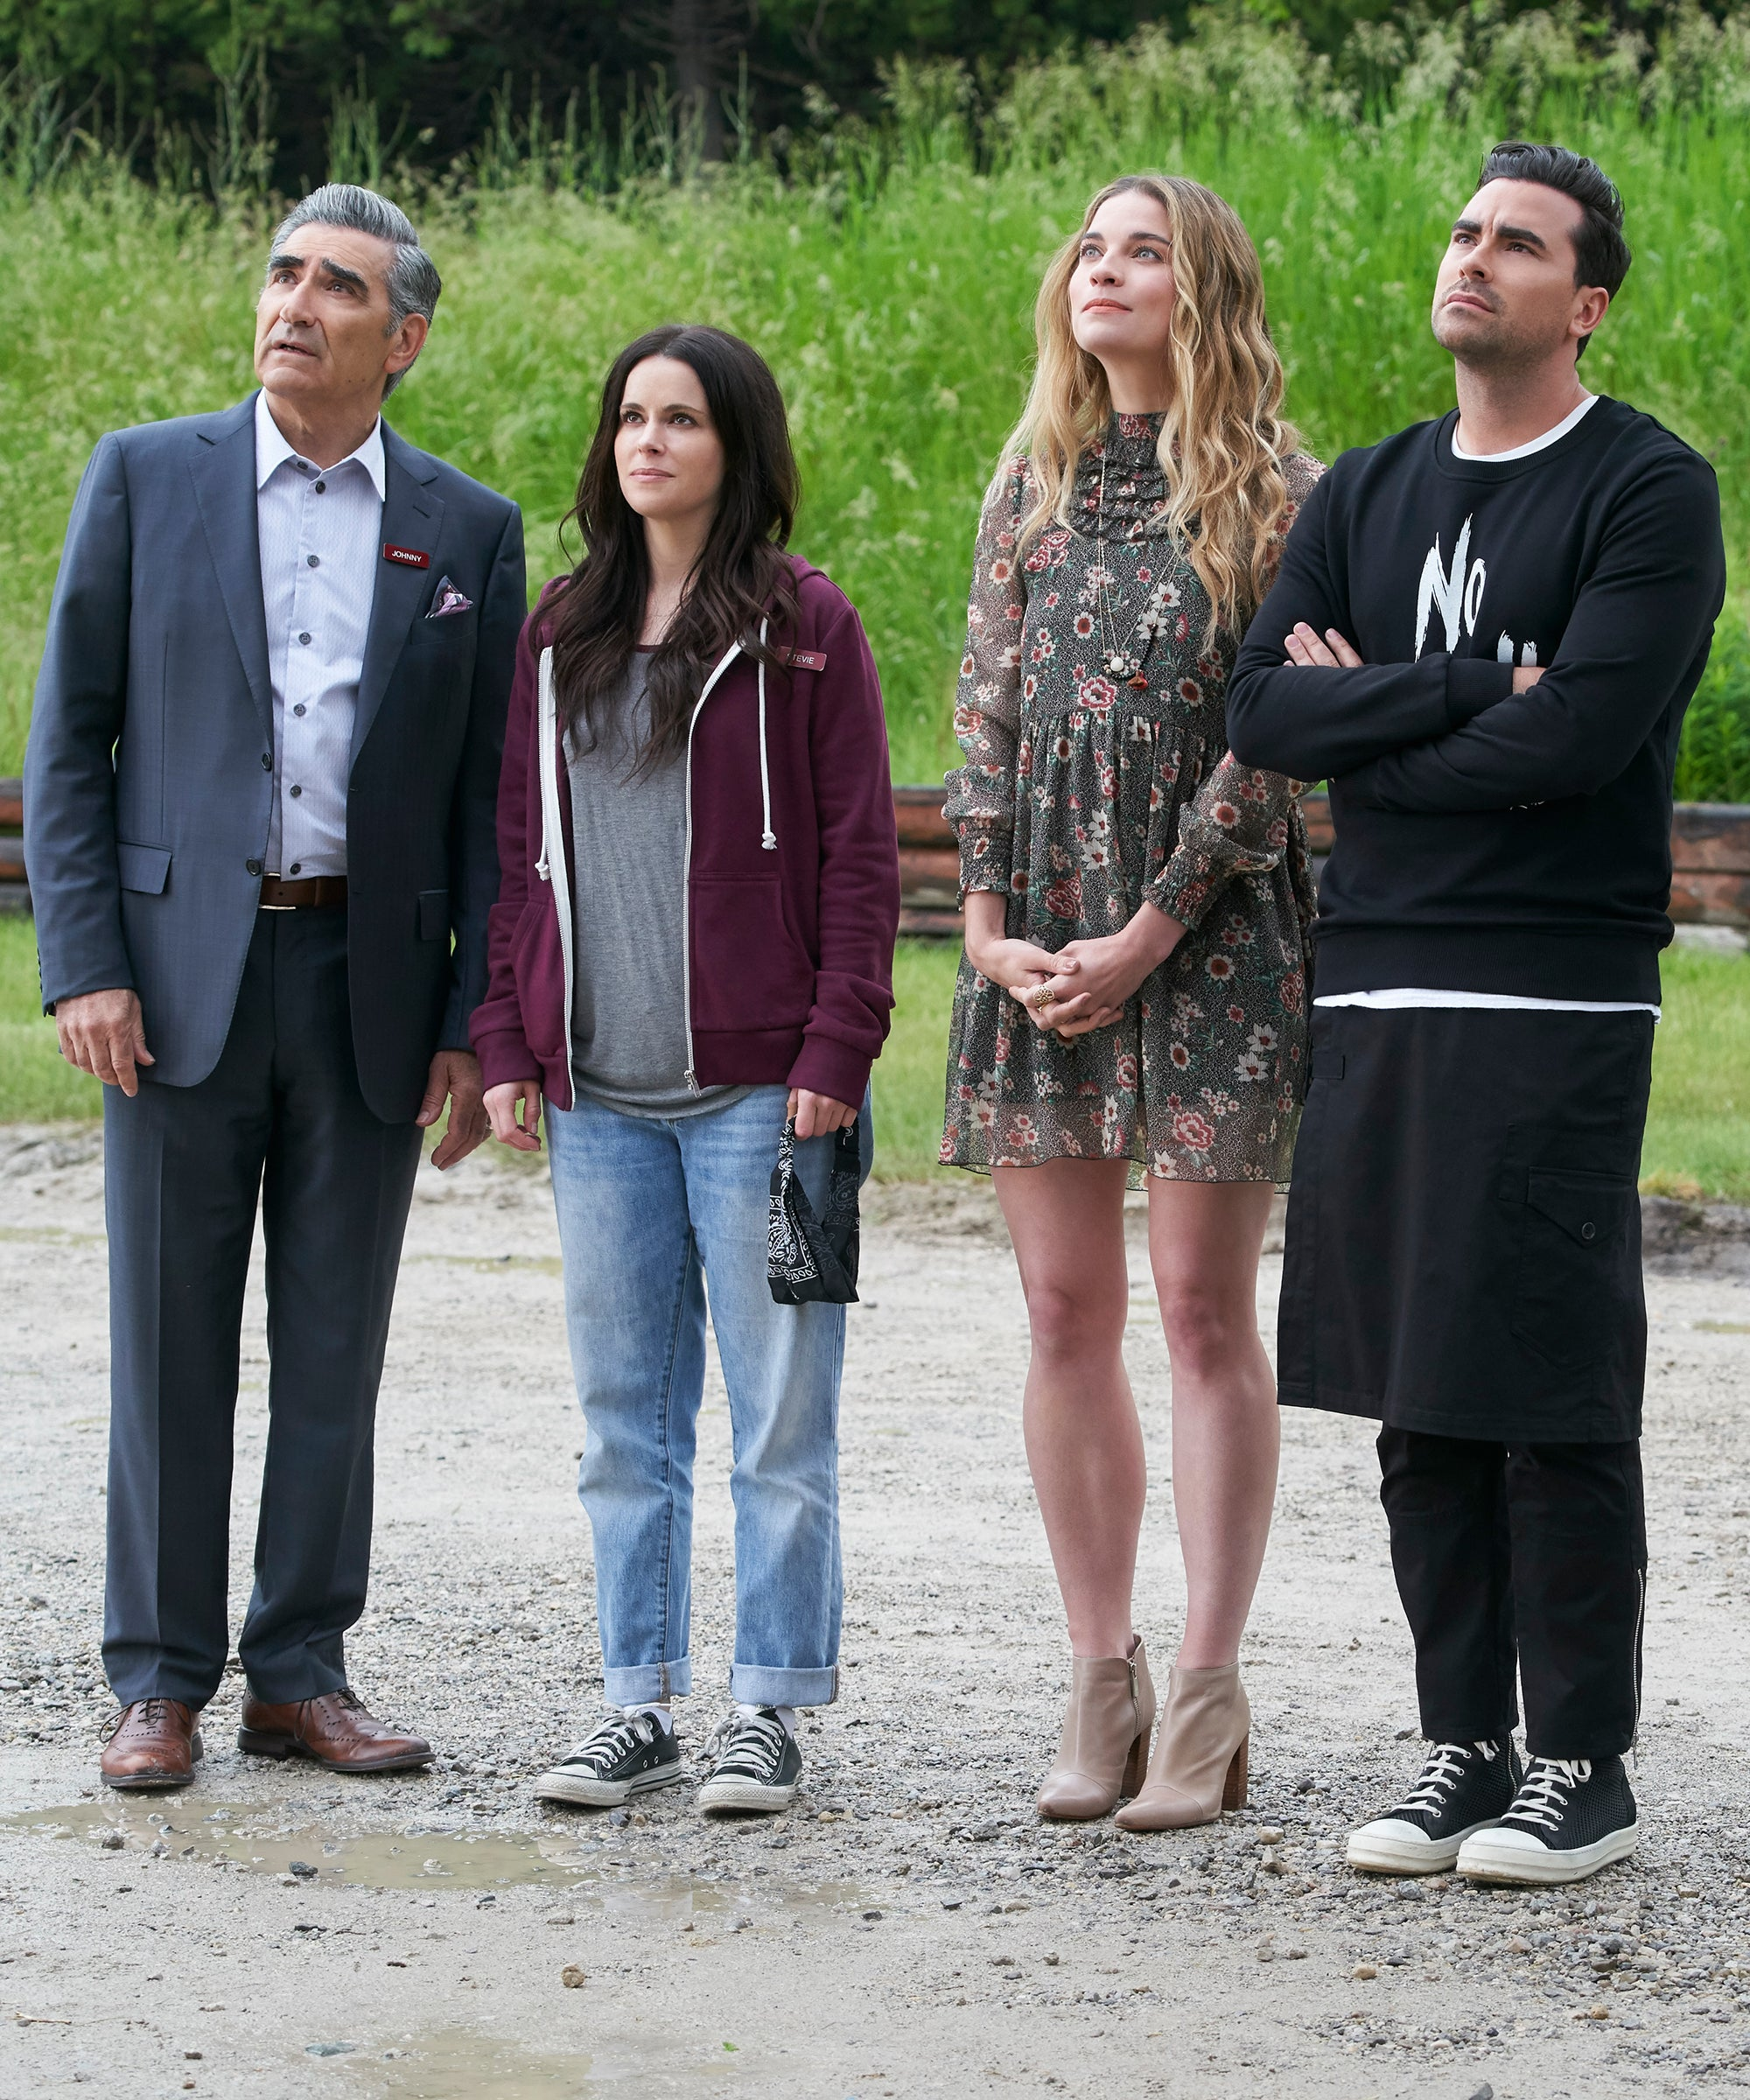 Wait A Minute, Where Is Schitt's Creek Actually Supposed To Be?